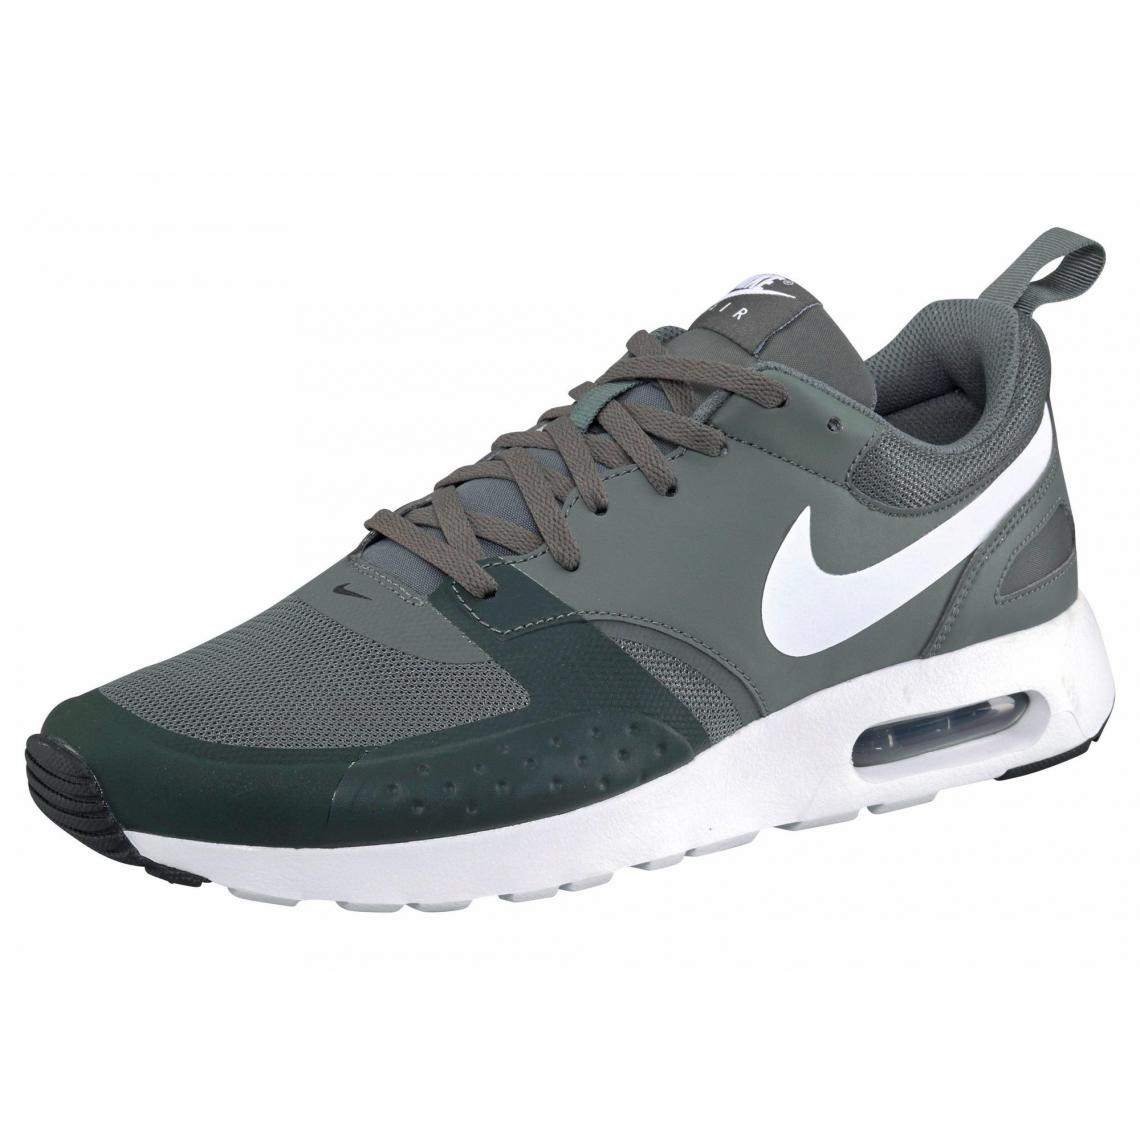 the latest a1f71 2c645 Nike Air Max vision chaussures sport homme - Noir - Noir - Blanc Nike Homme